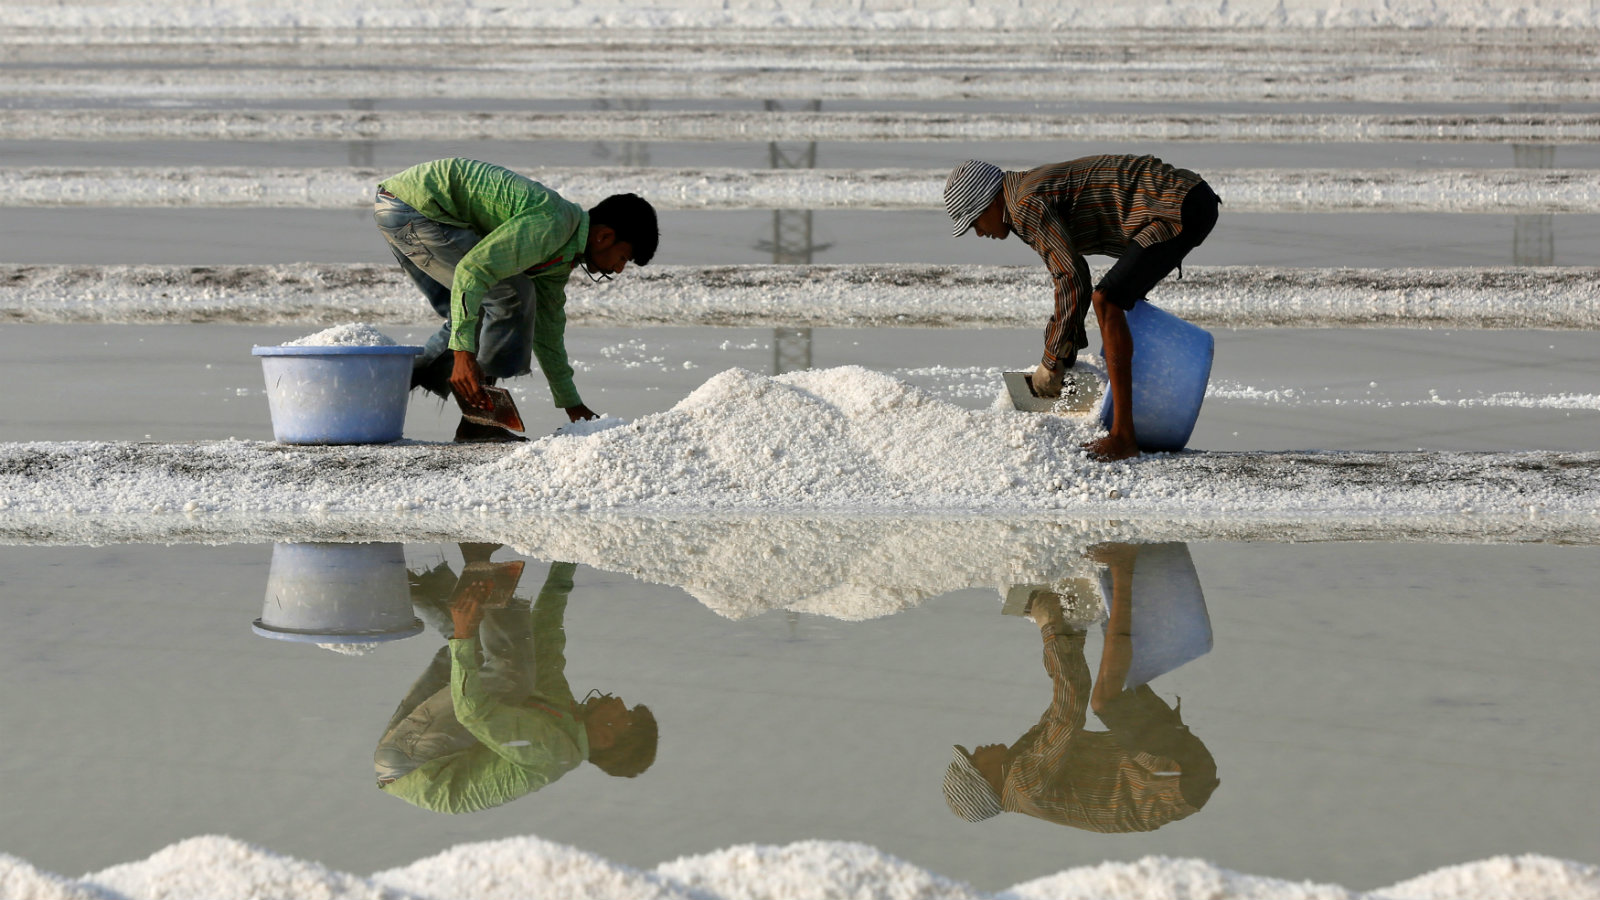 Mumbai's salt pans may soon fall by in big BJP real estate plans